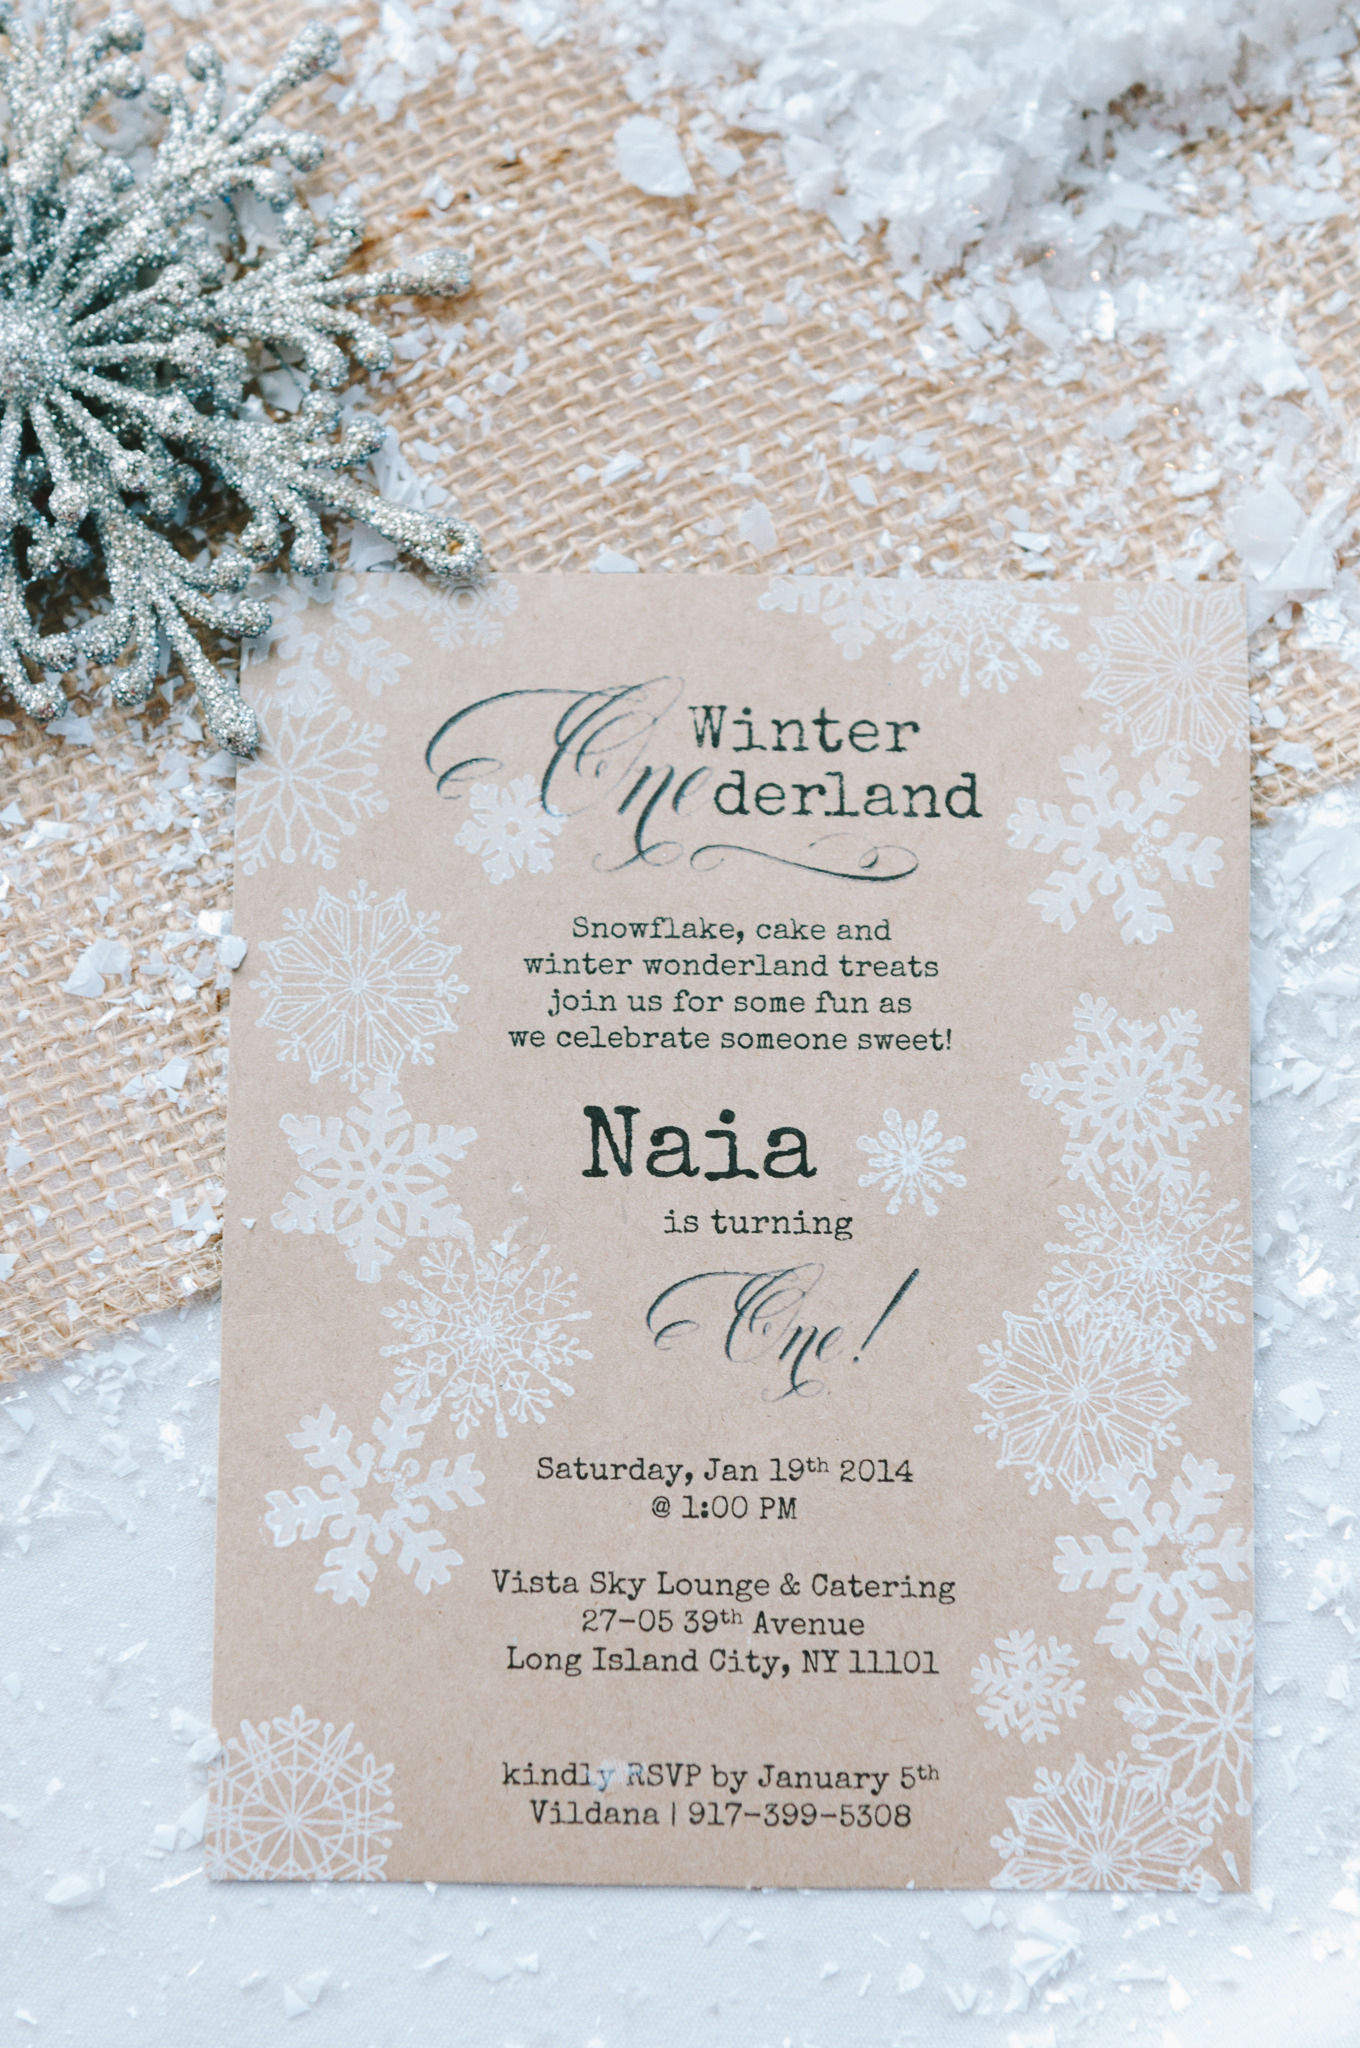 39th birthday party invitation wording ; club-party-invitation-wording-winter-wonderland-1st-birthday-party-party-invitations